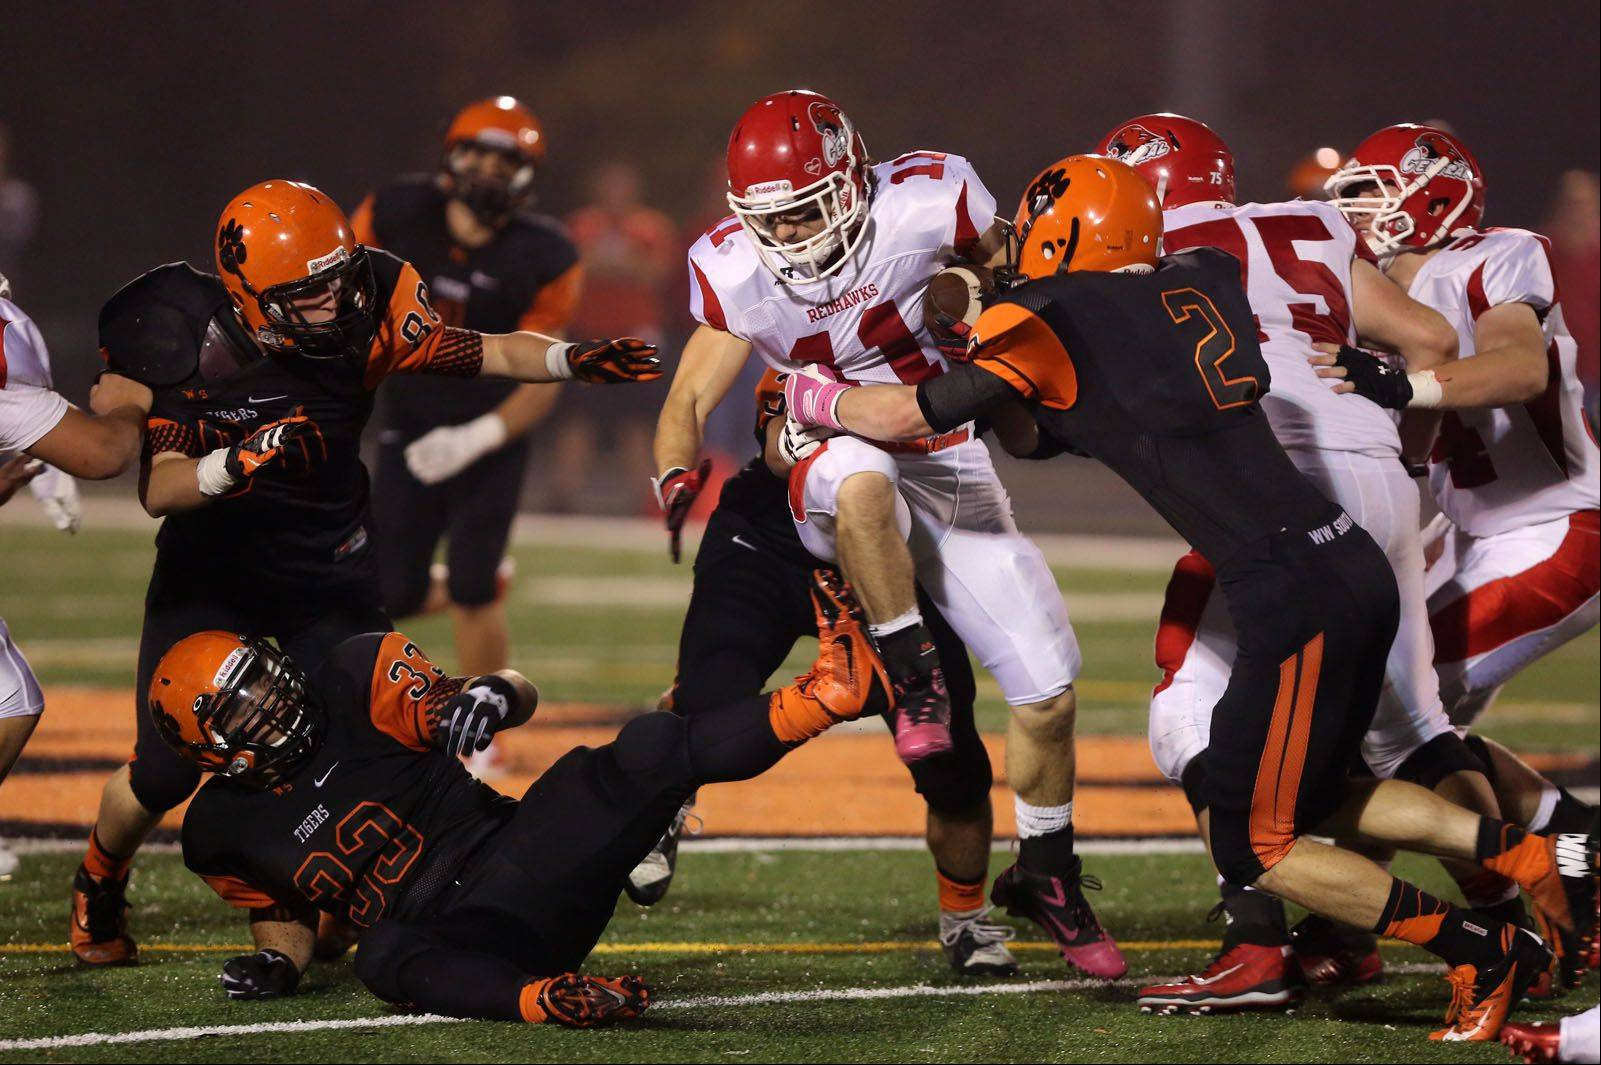 Naperville Central's Ben Andreas breaks through several Wheaton Warrenville defenders before being tackled by Matthew Brocious.